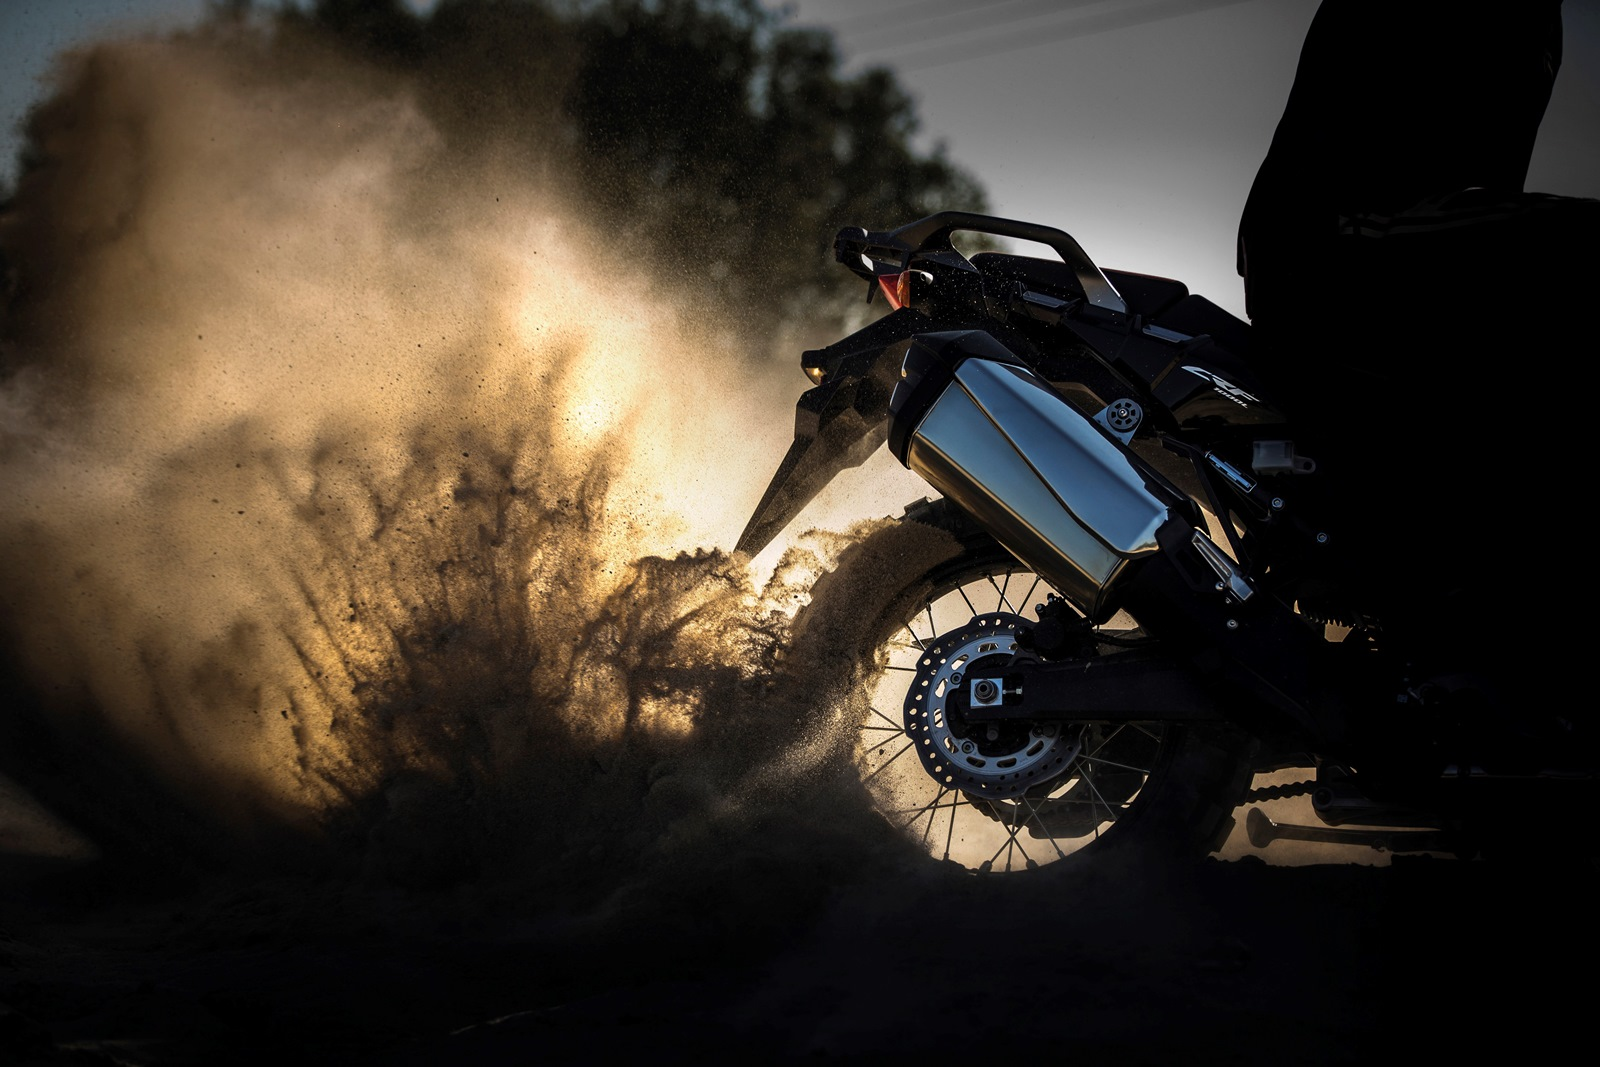 2016 Honda CRF1000L Africa Twin burnout